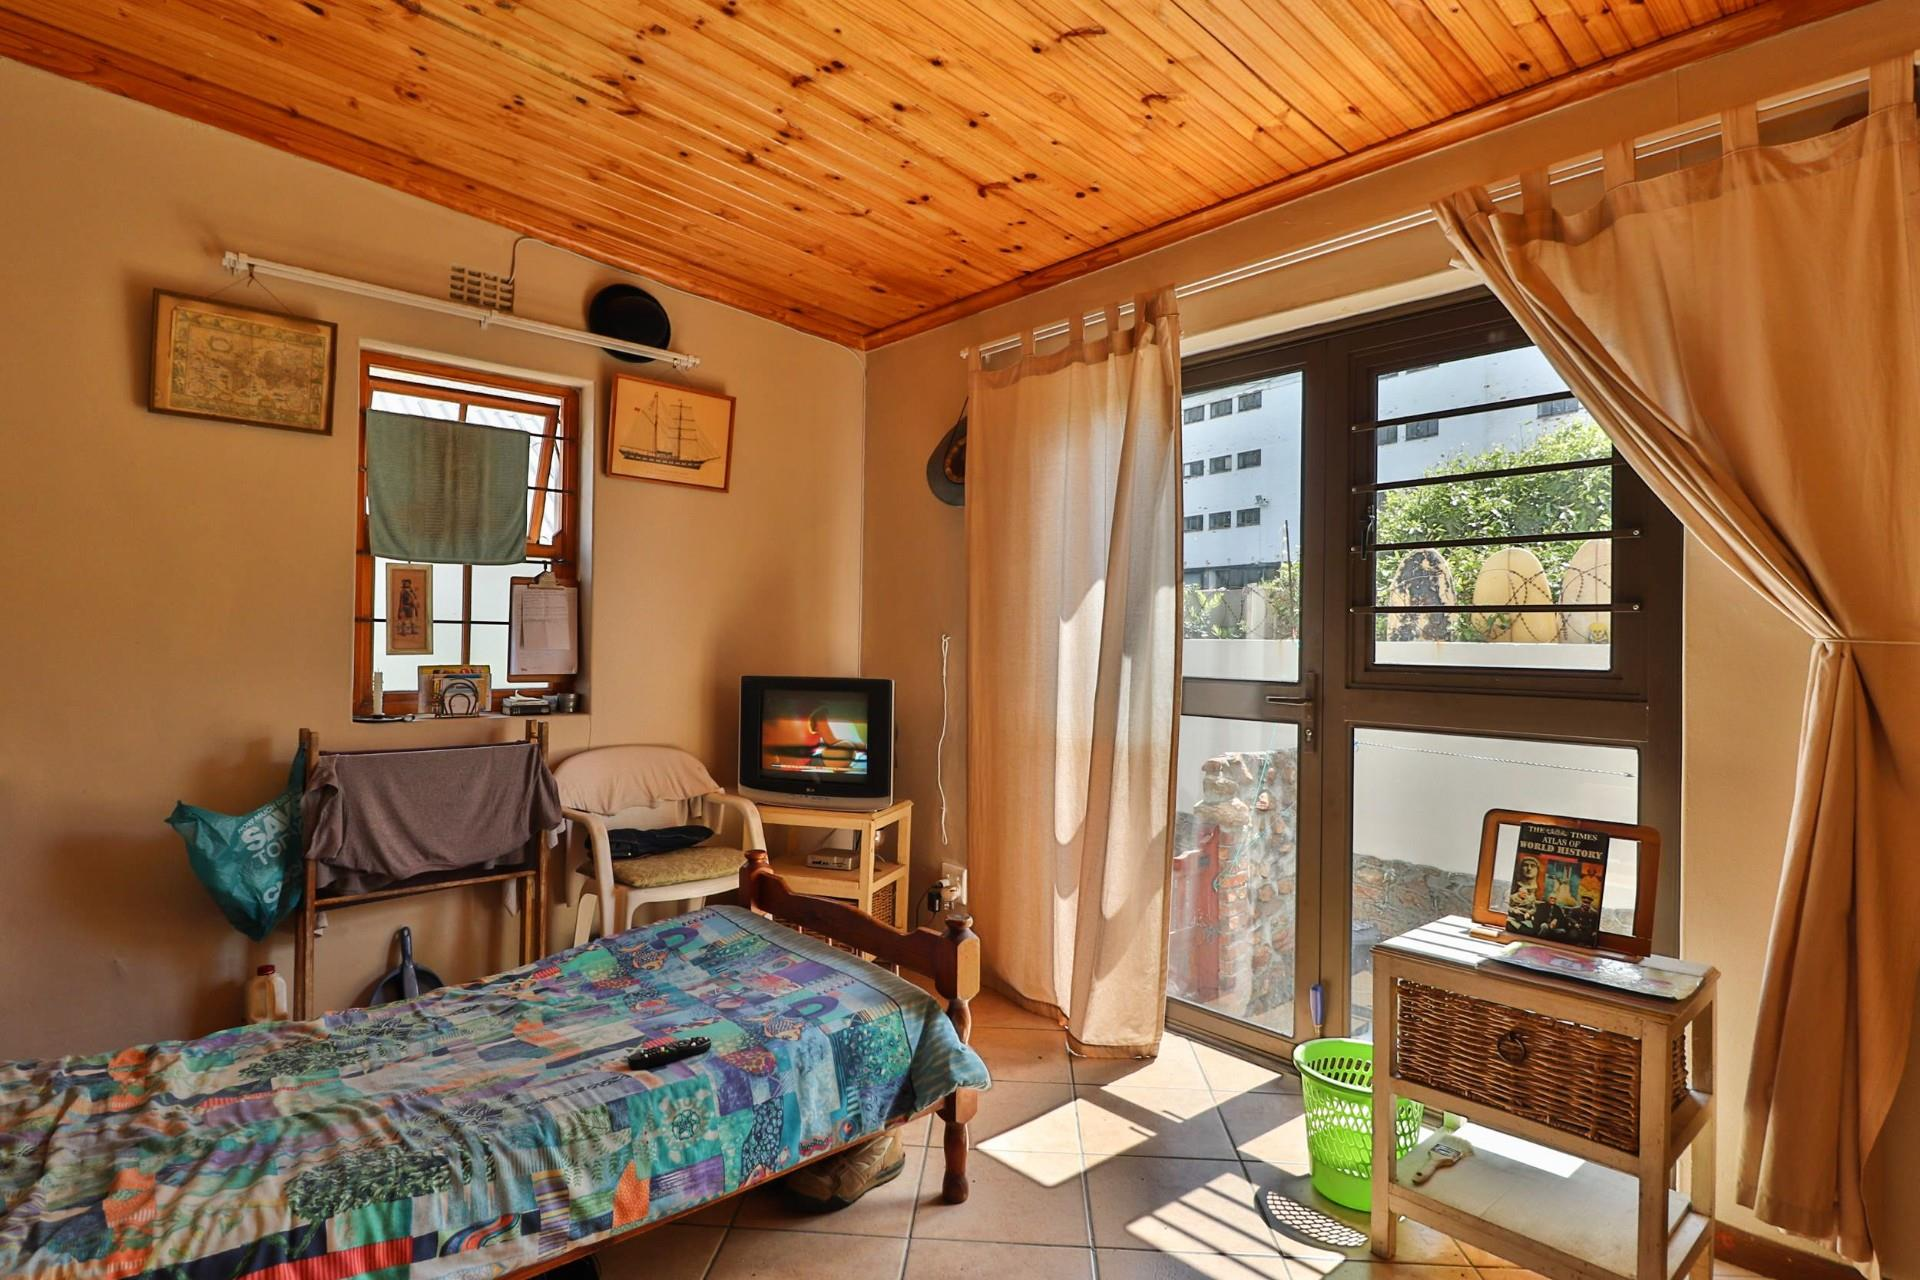 3 Bedroom Apartment For Sale in Muizenberg